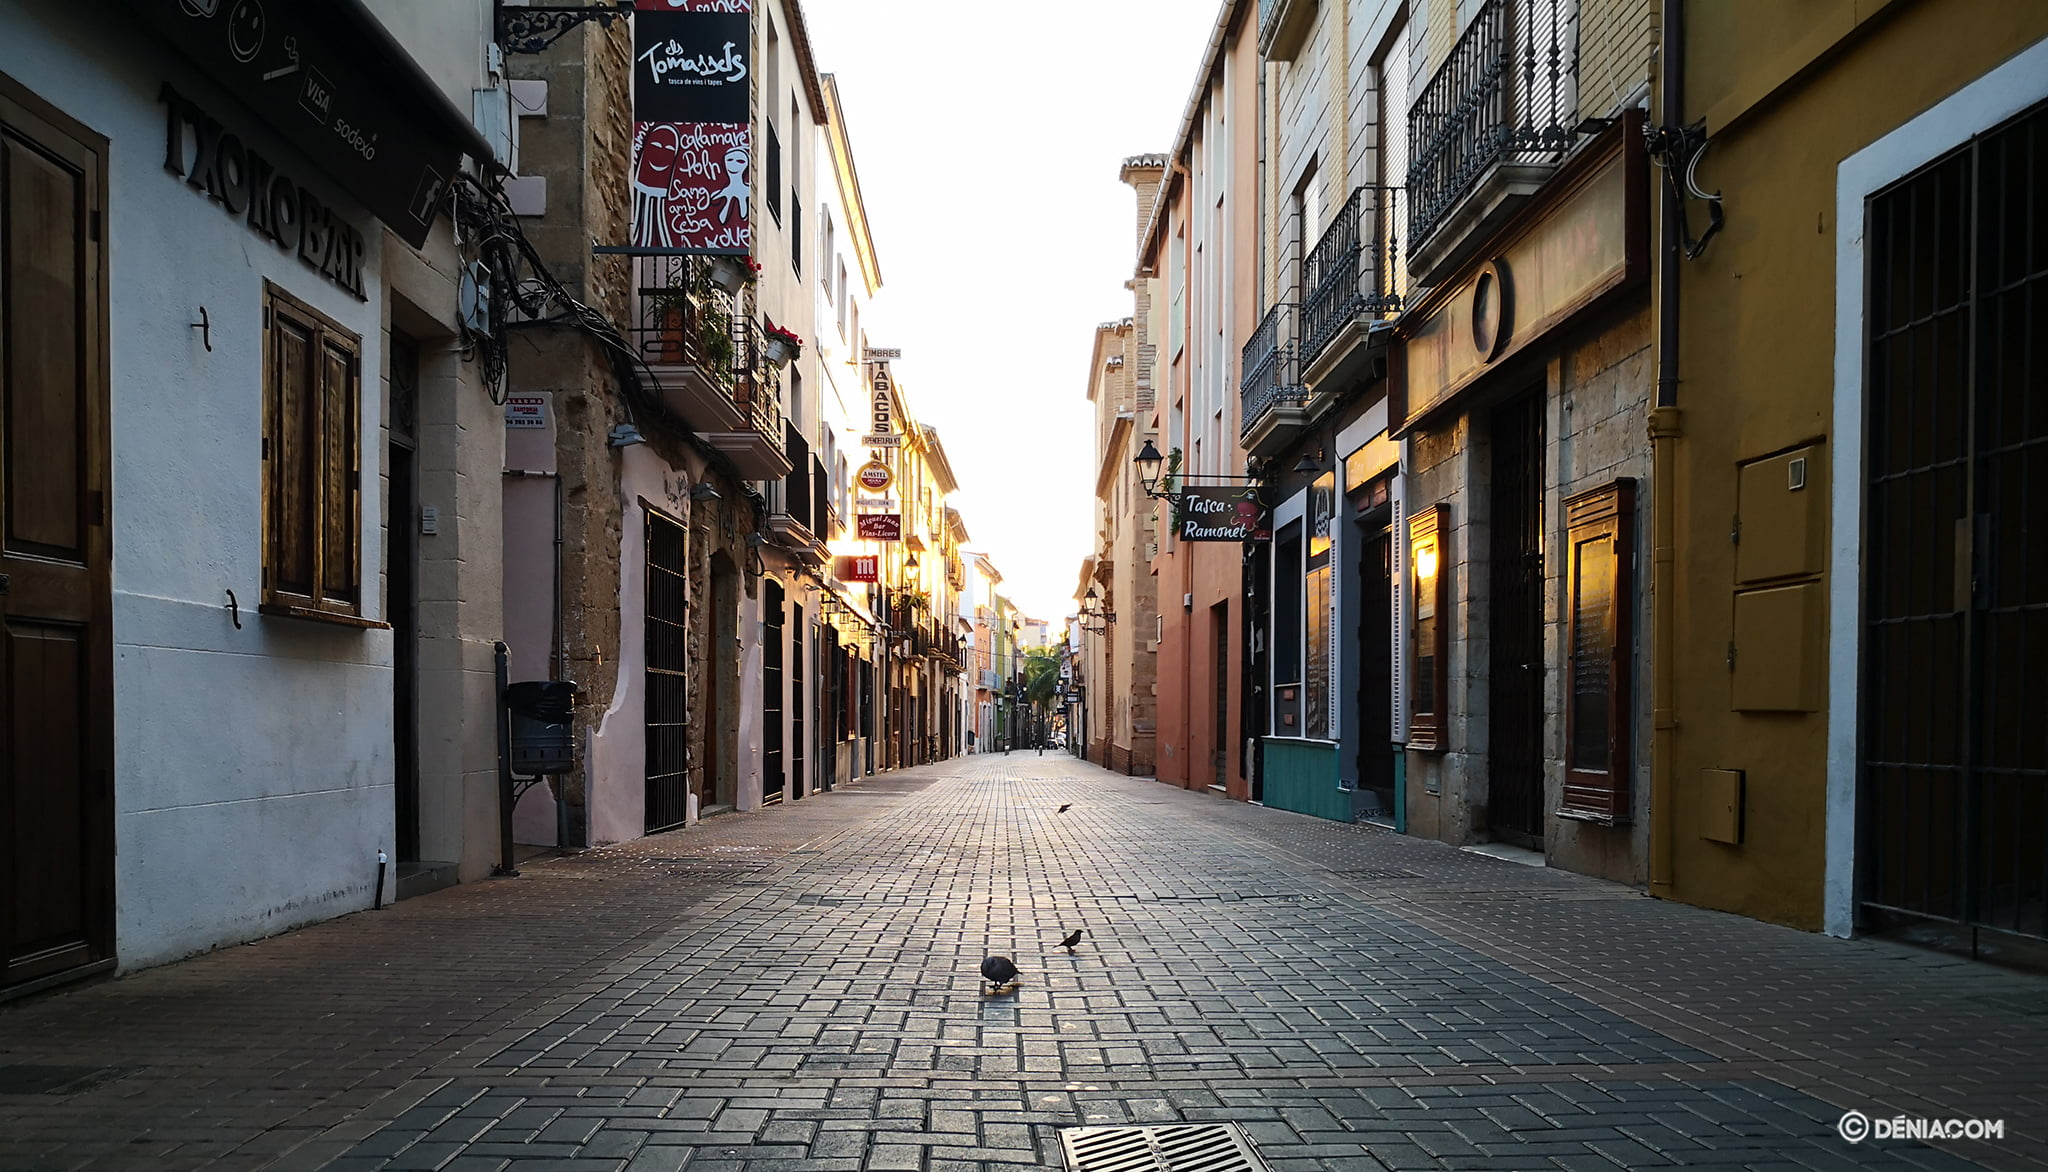 The streets of Dénia deserted